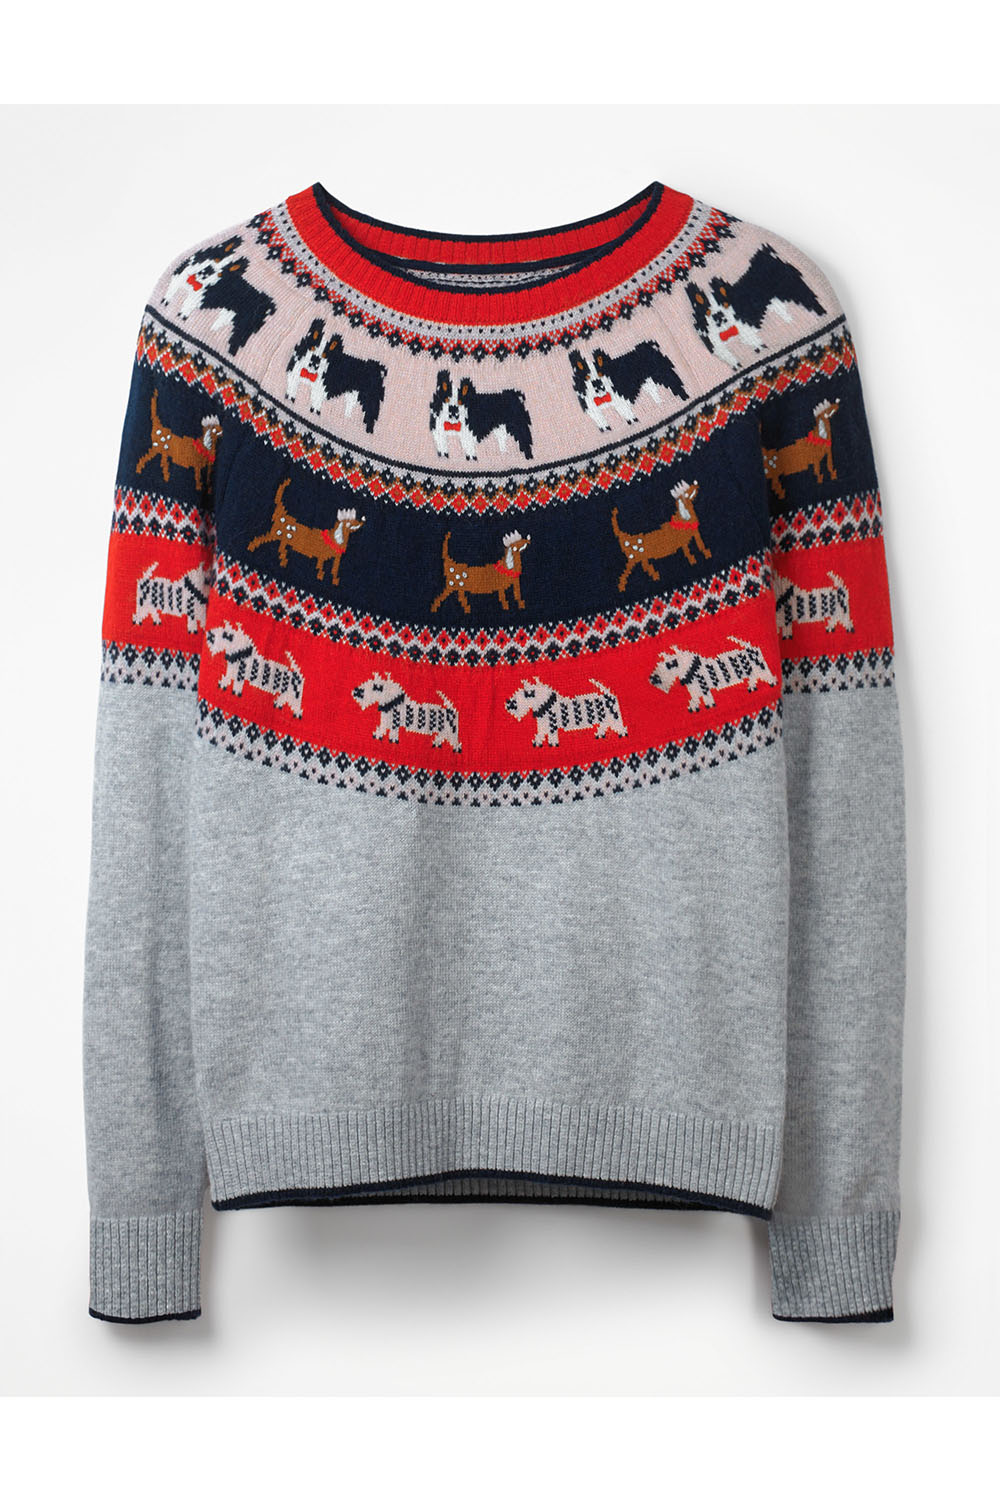 Christmas Jumpers.Where To Buy Christmas Jumpers That Are Actually Chic Af